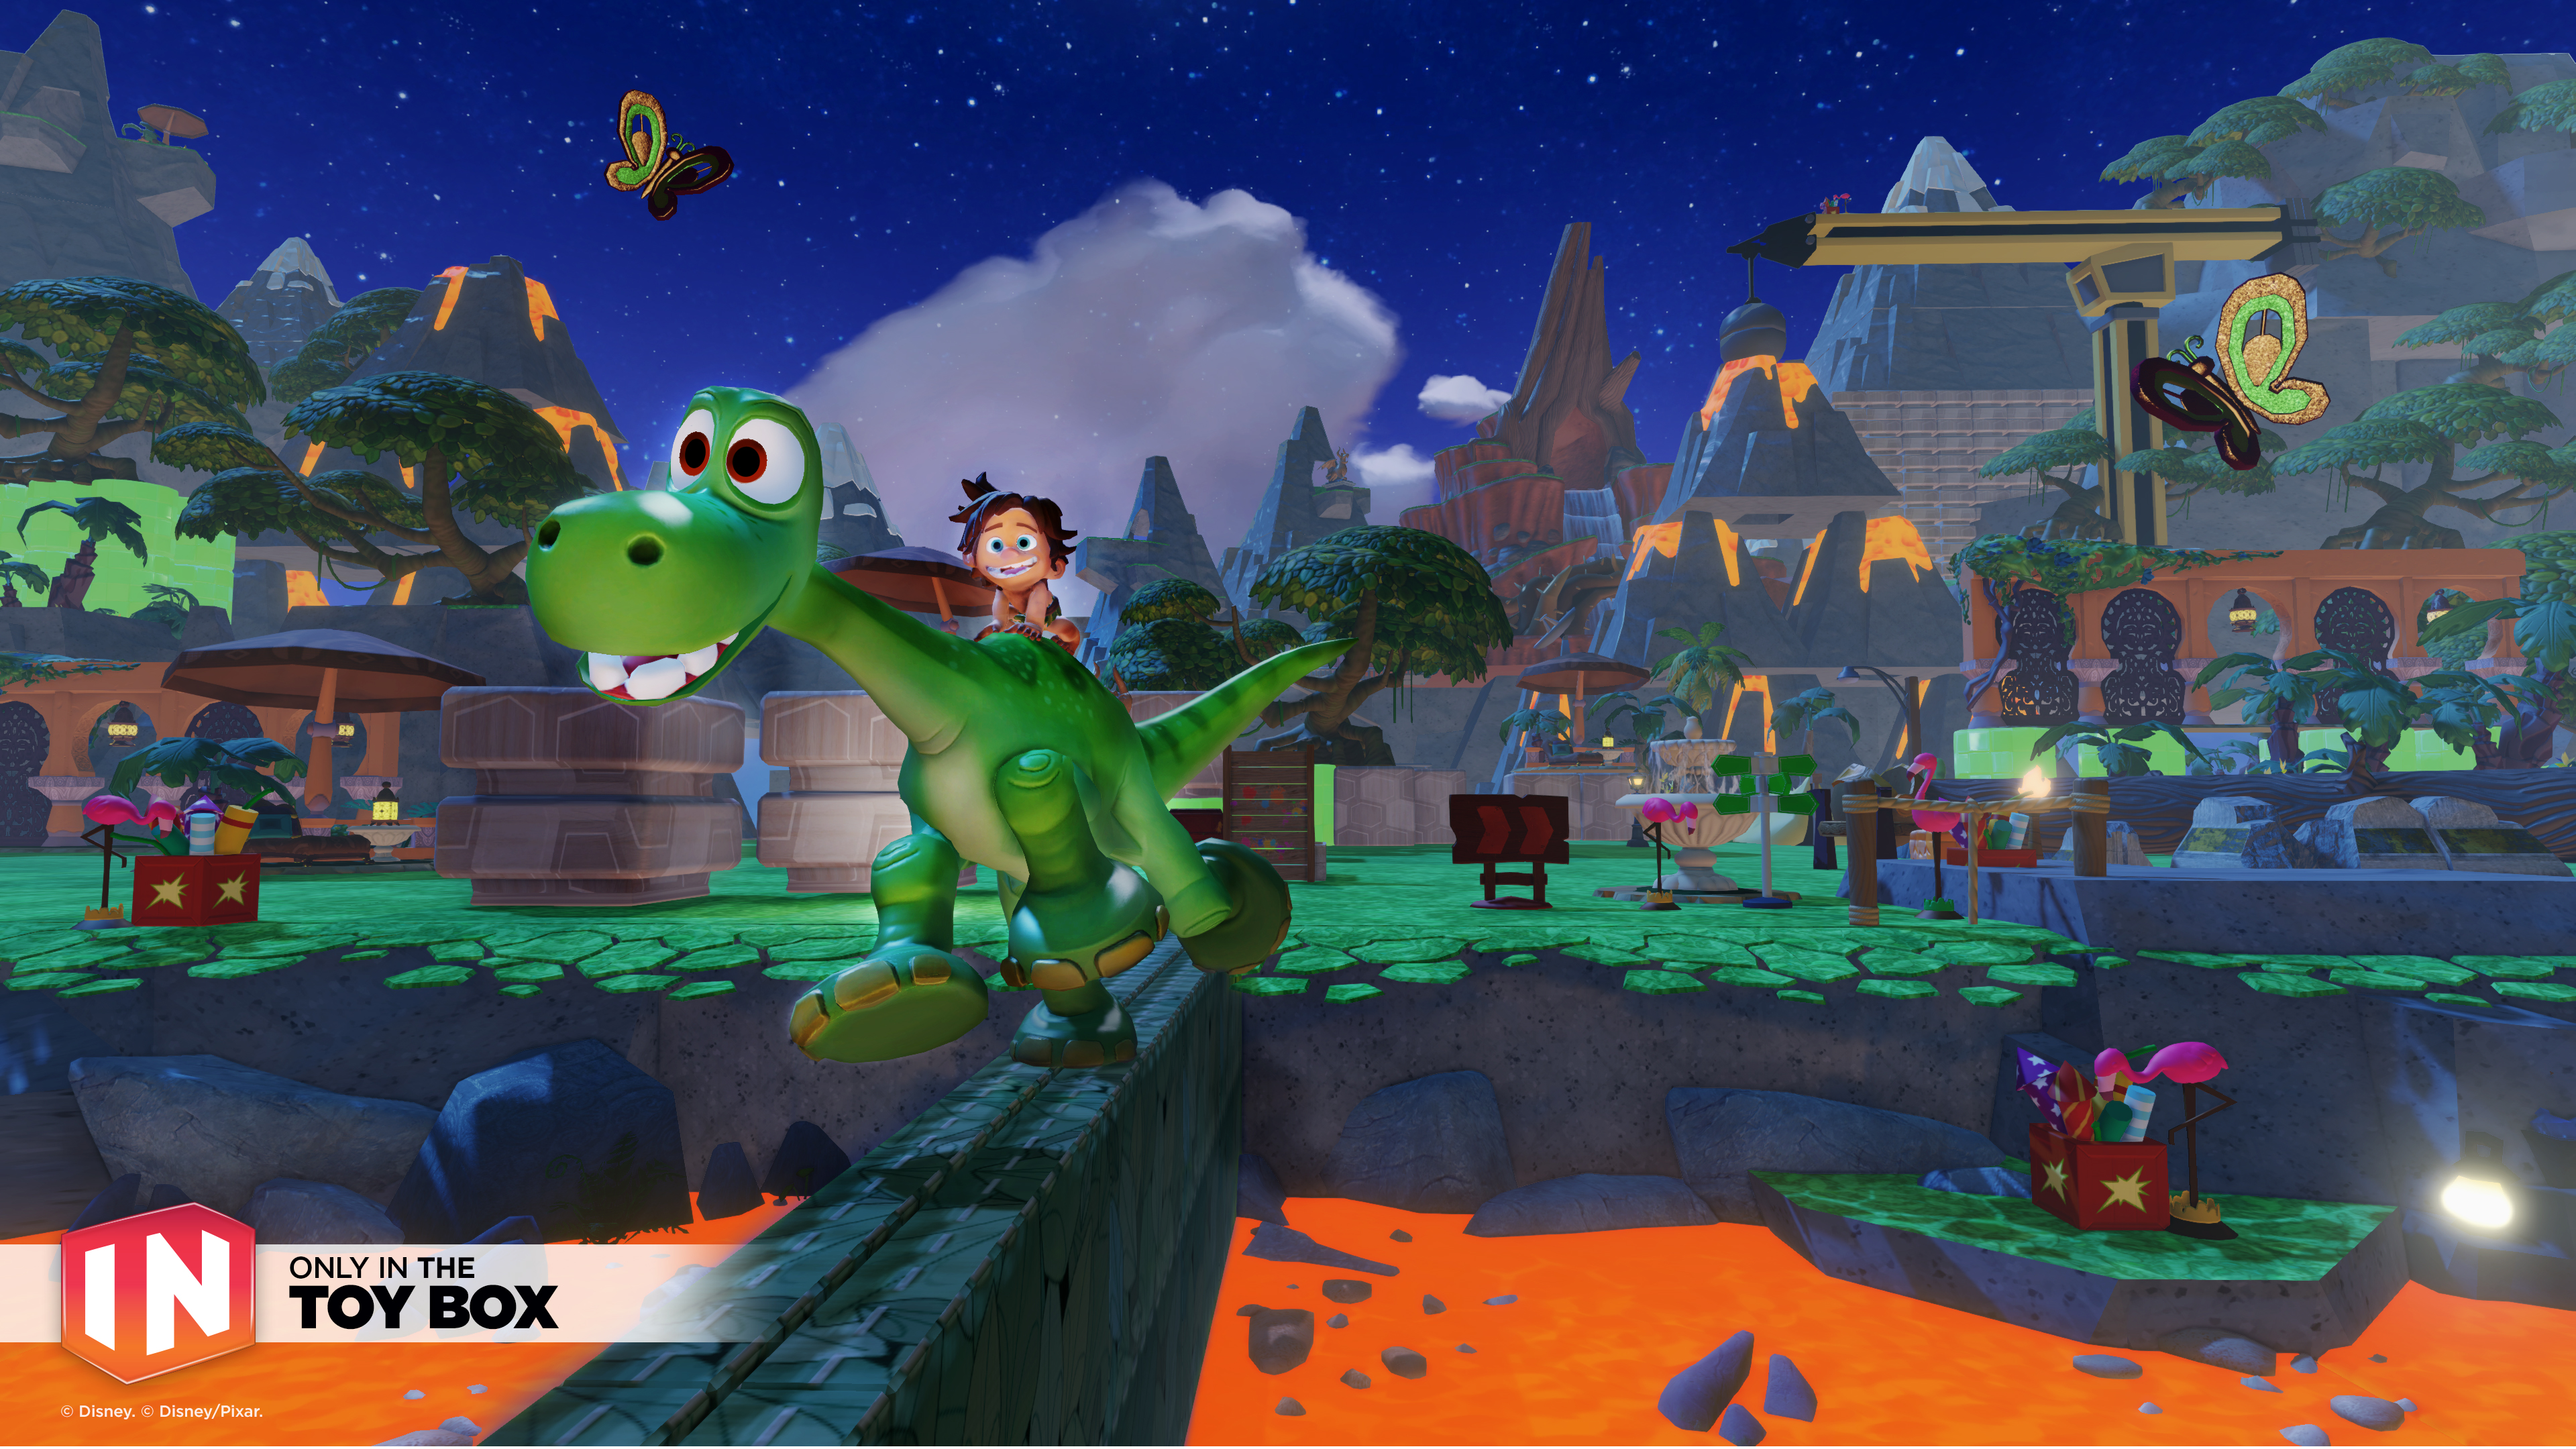 disney infinity 3.0: a toy box guide for new players | venturebeat